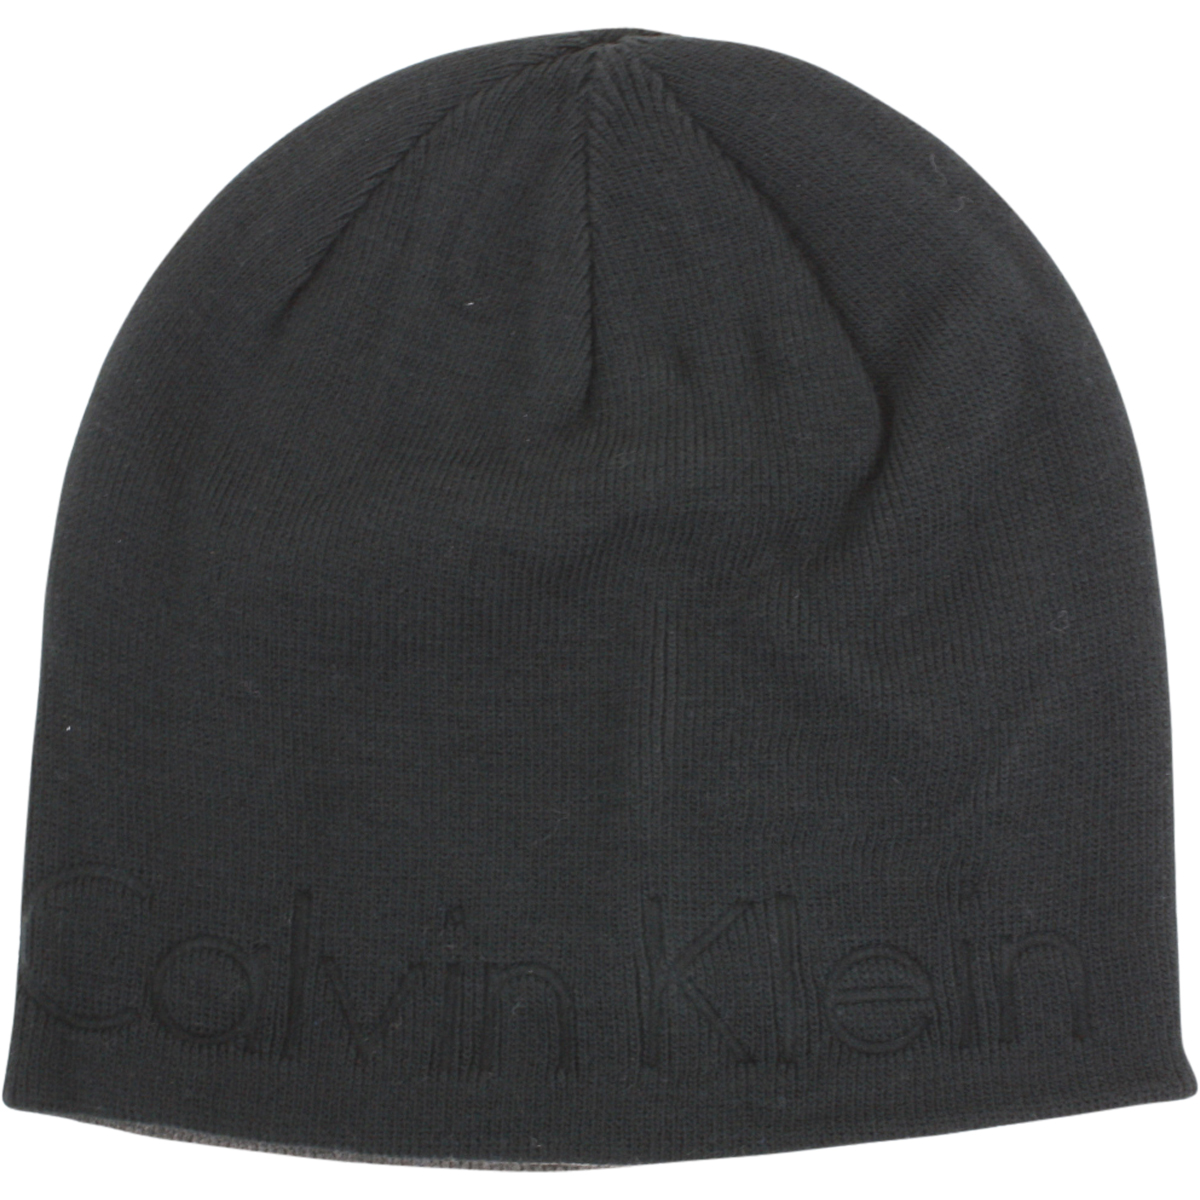 Calvin Klein Men s Embossed Logo Beanie Cap Winter Hat (One Size ... 8da8a84946e